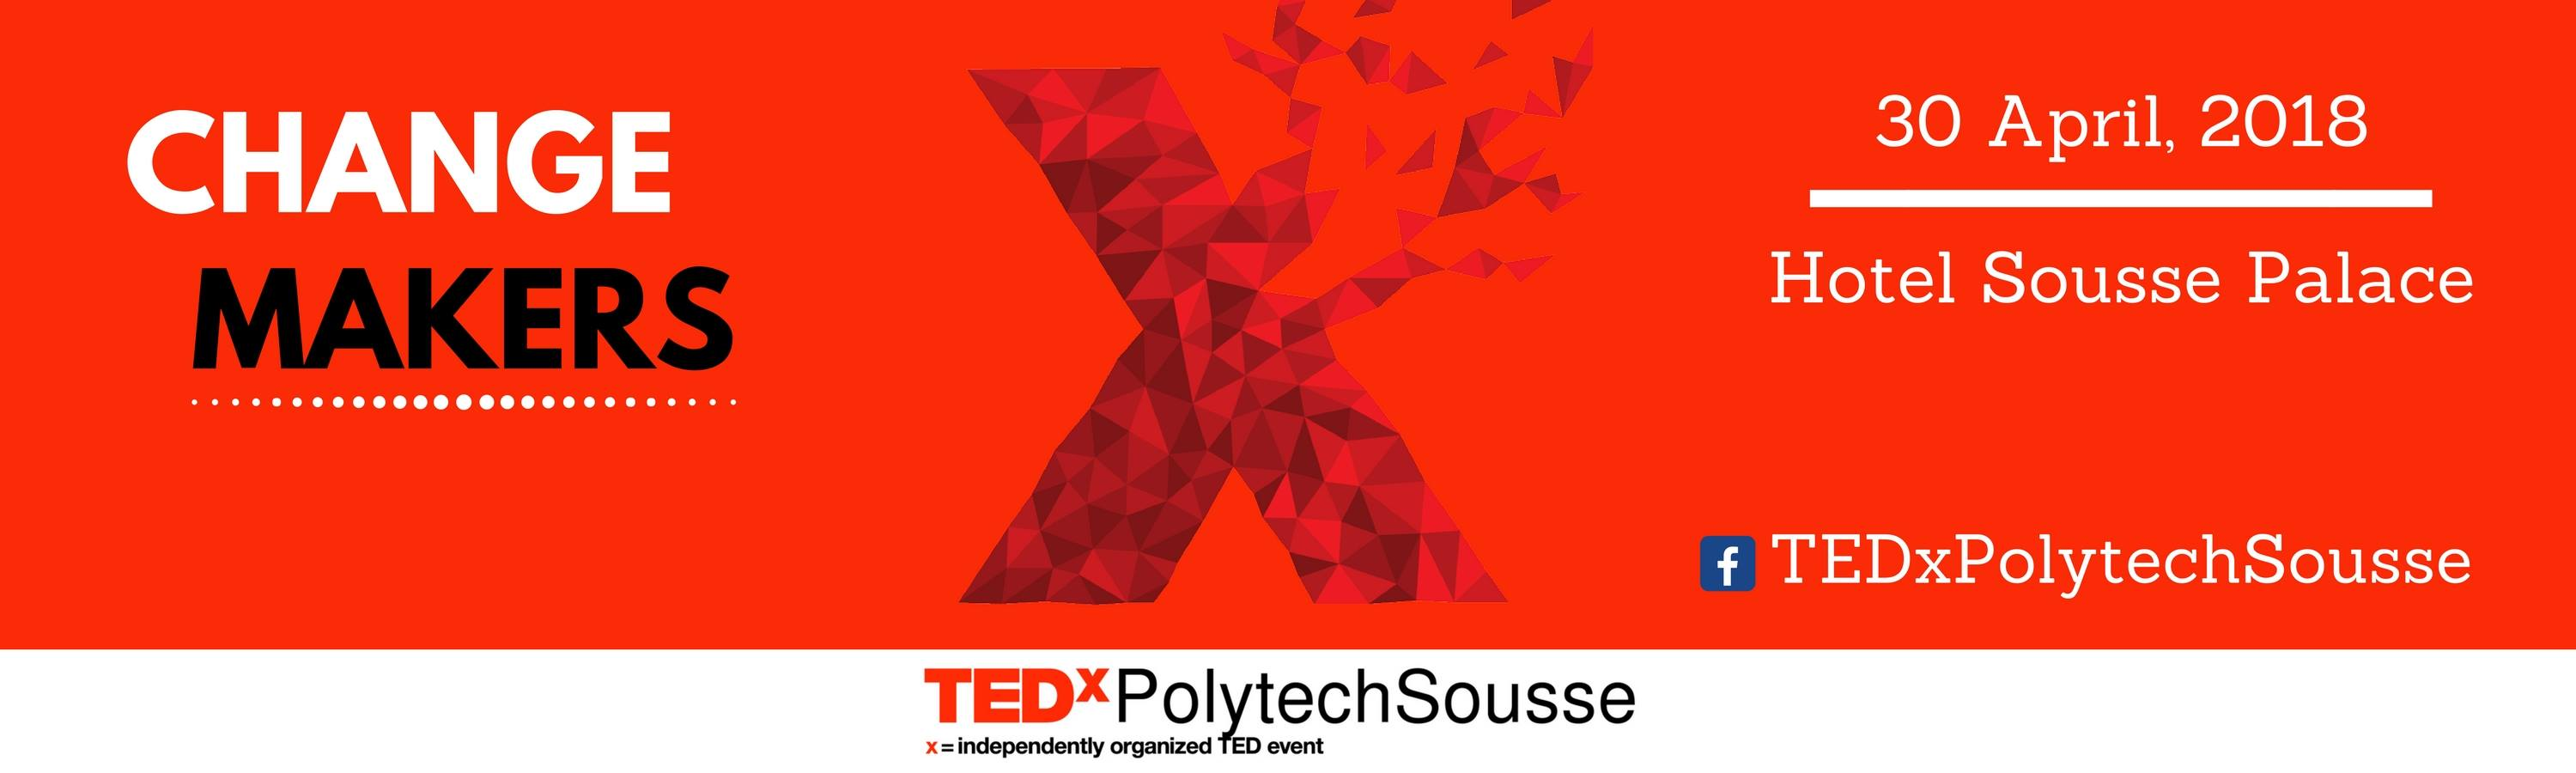 TEDxPolytechSousse